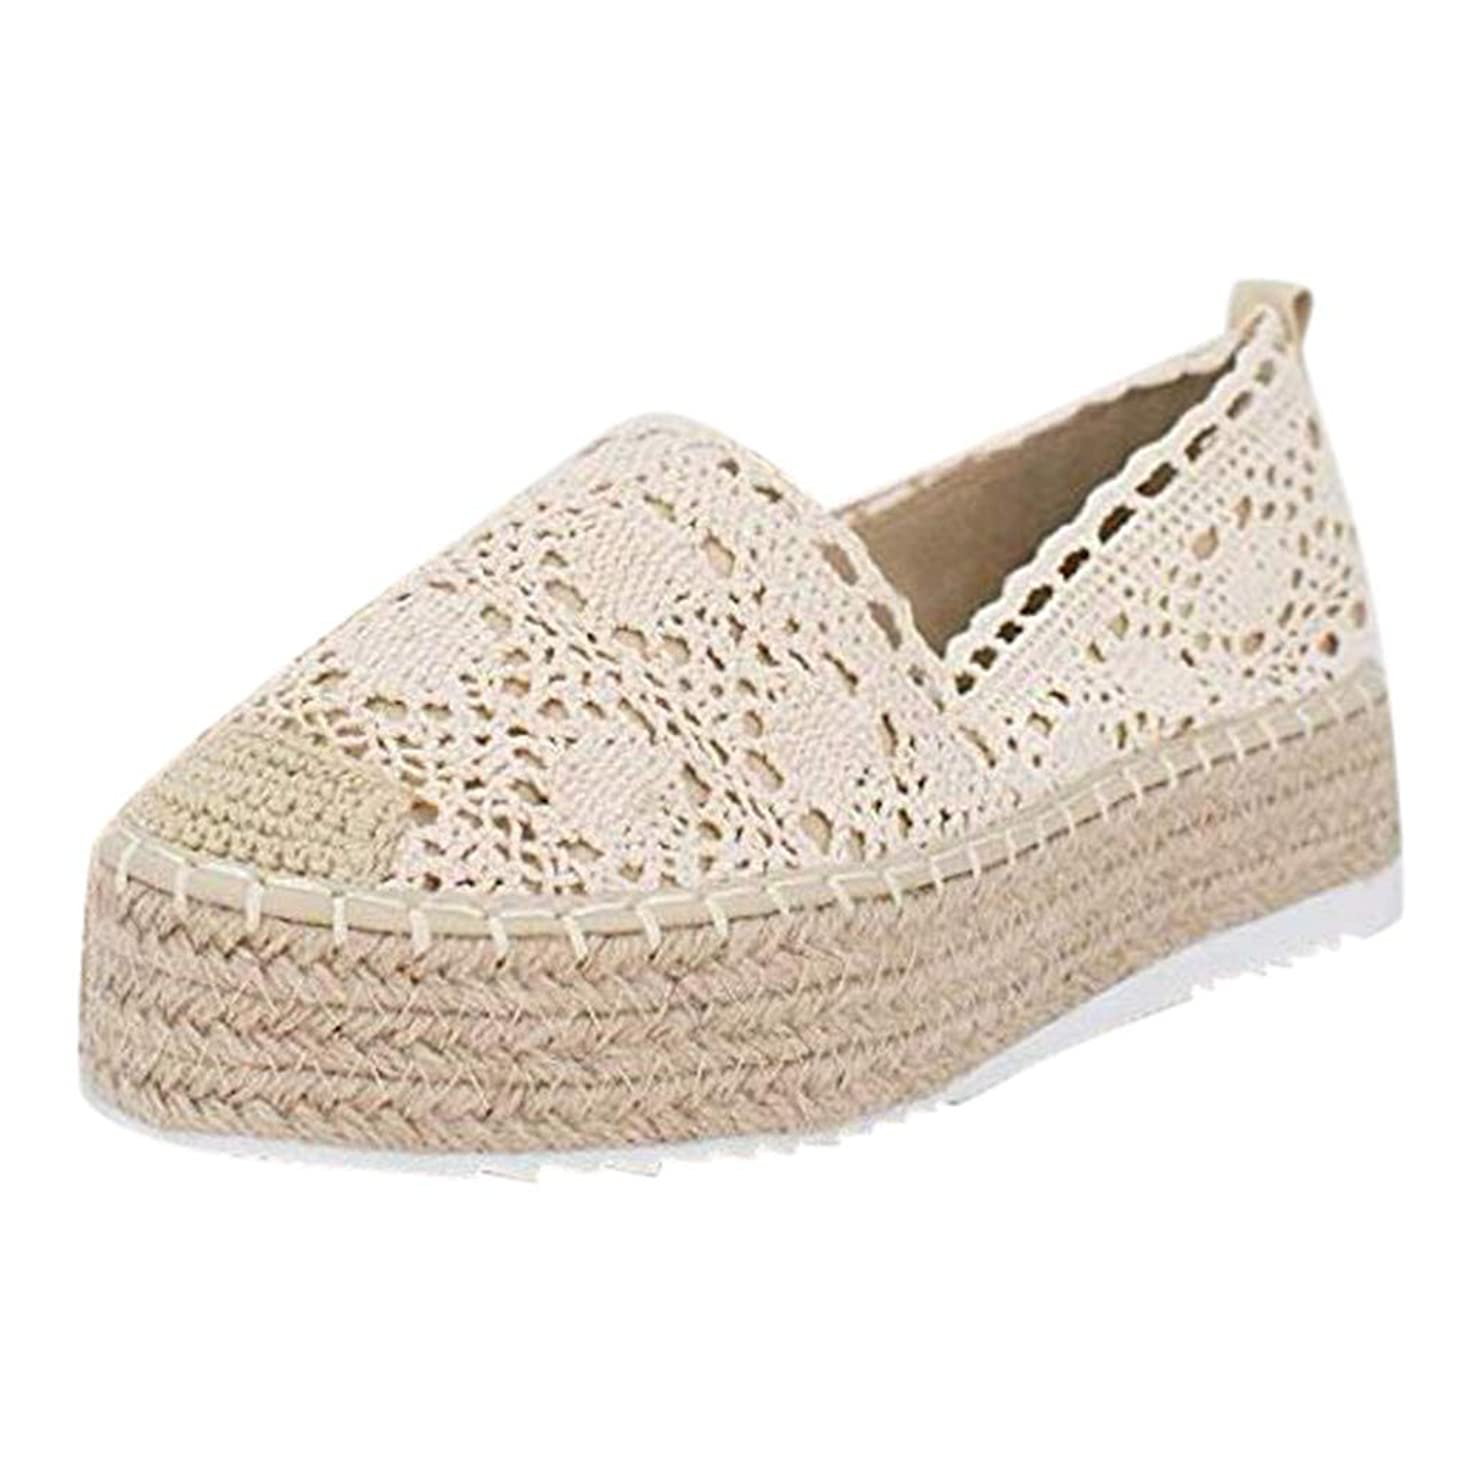 Haalife??Women's Espadrille Loafers Casual Slip On Comfortable Sneakers - Comfortable Lace Flat Shoes